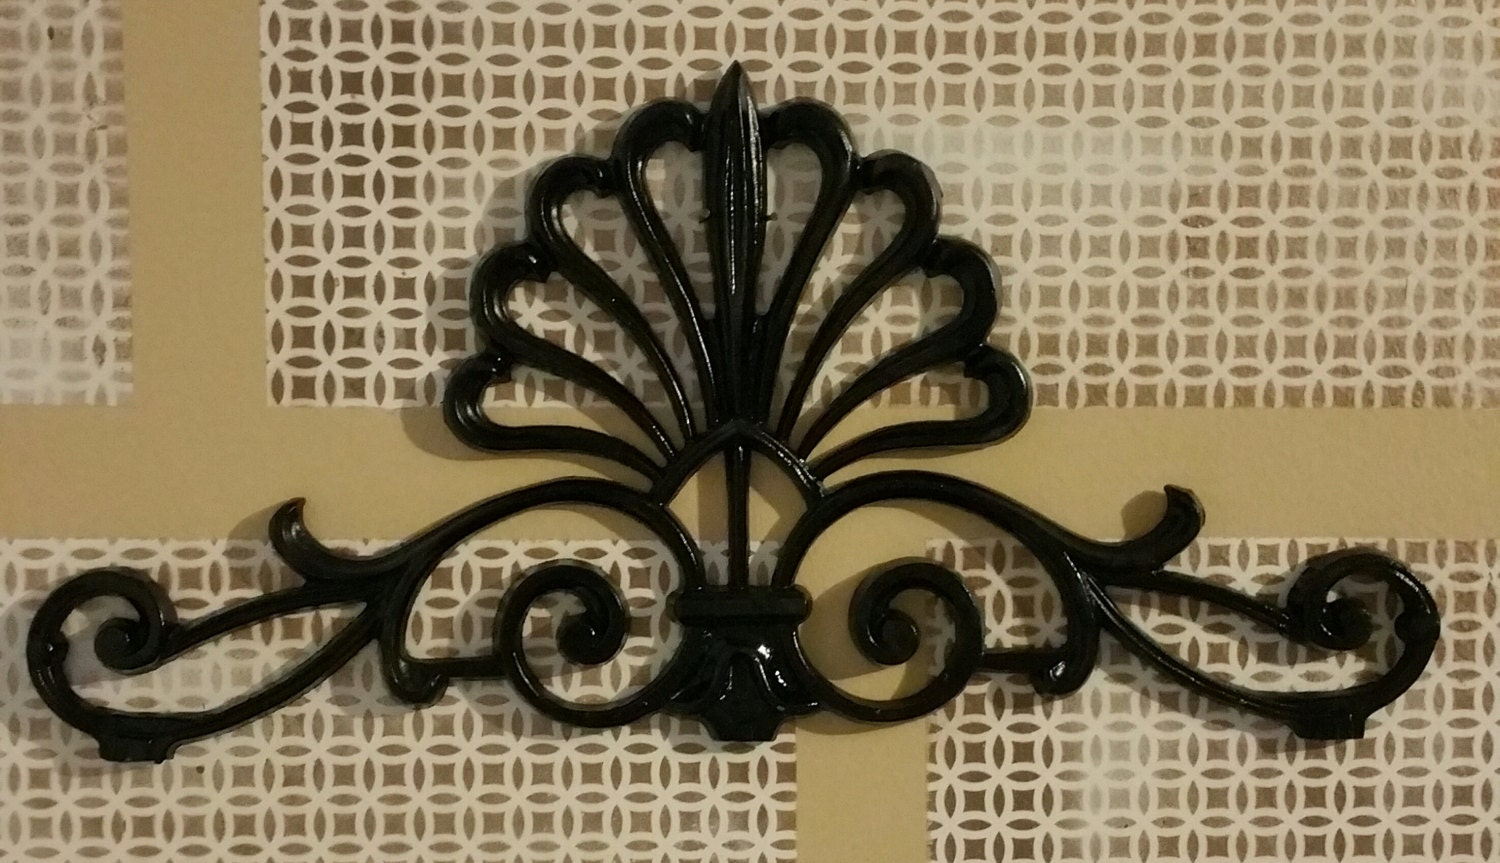 Metal Wall Decor Etsy : Metal wall art decor alluminum cast by irondecorations on etsy